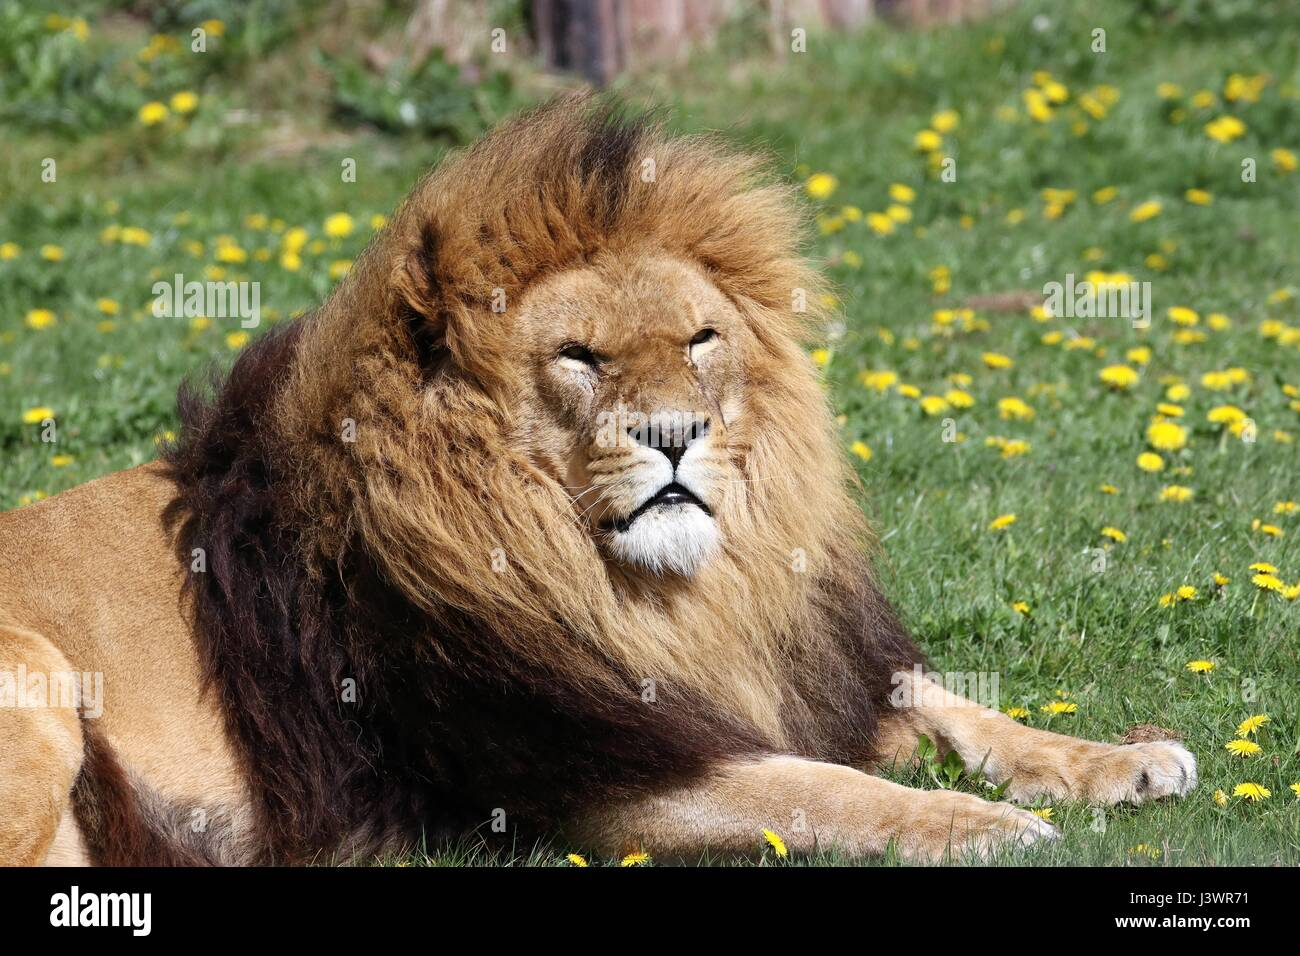 A male lion laying down next to some grass - Stock Image